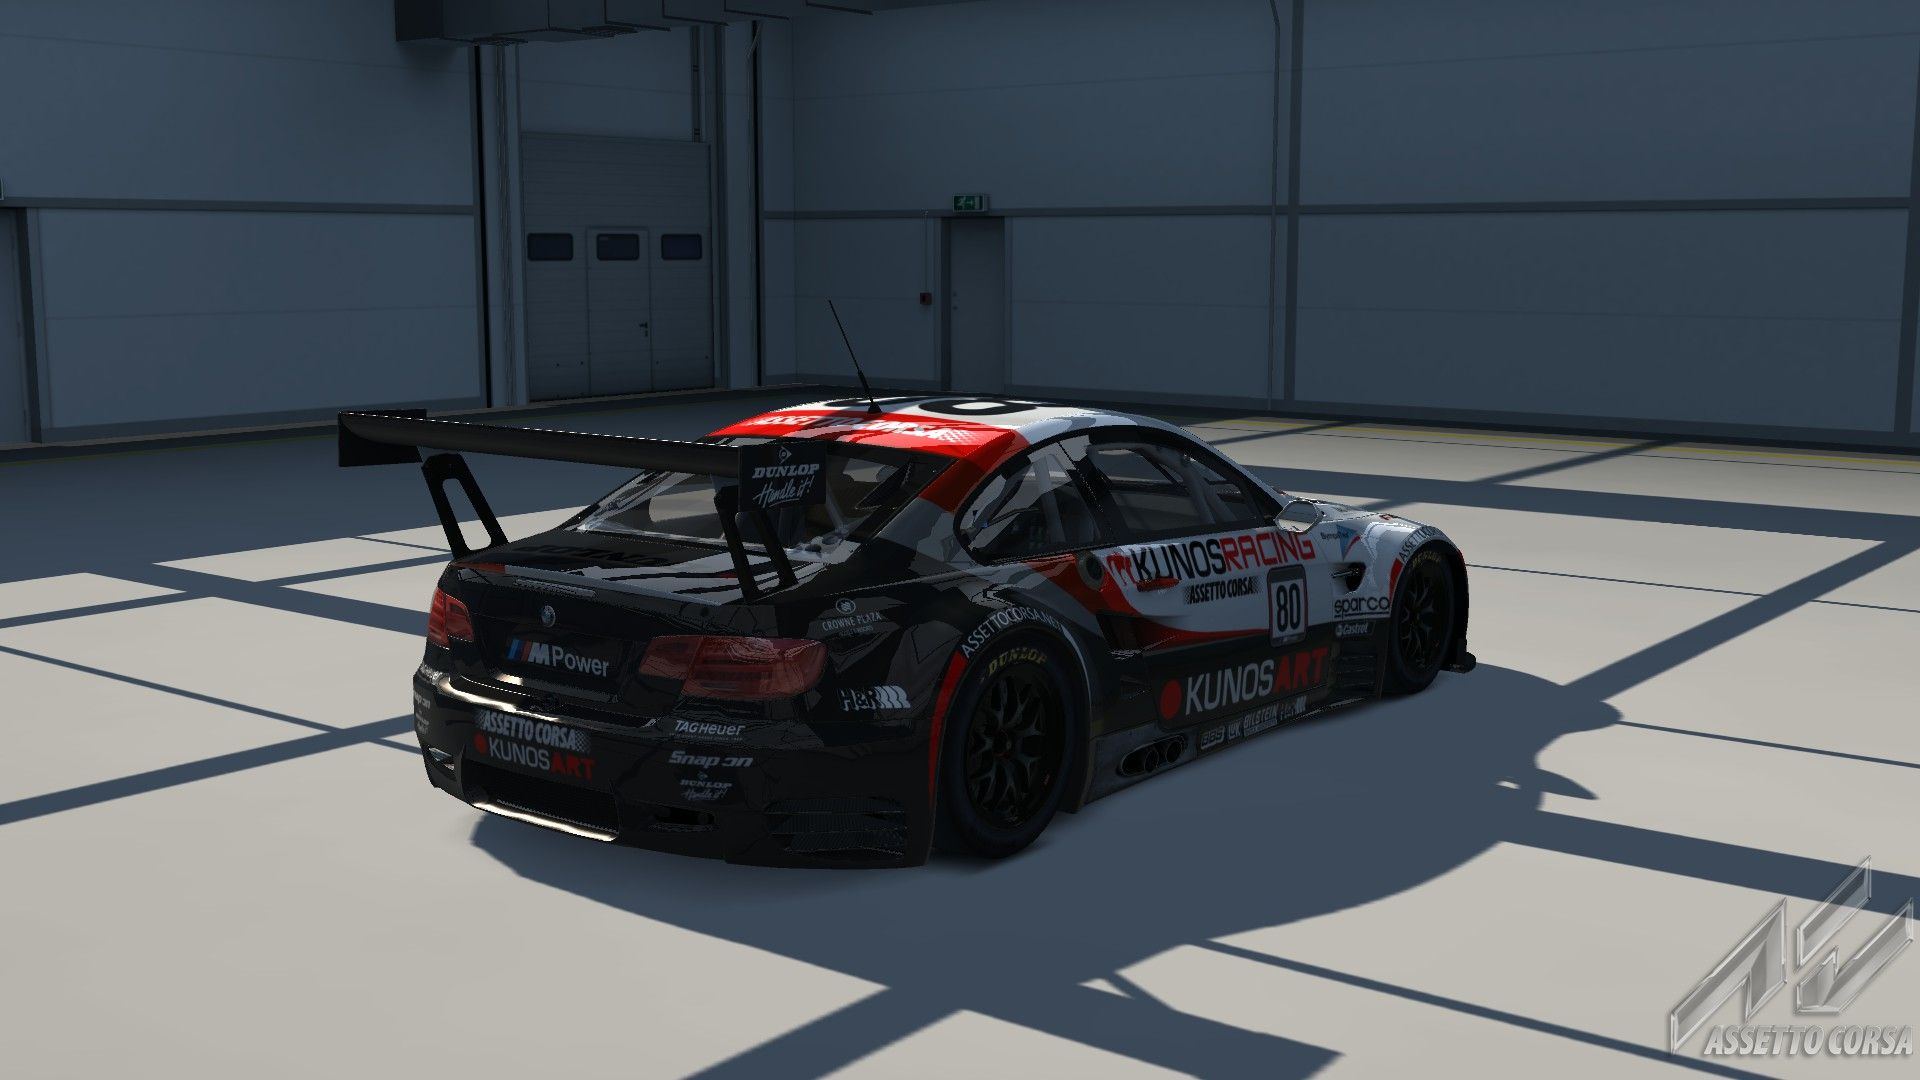 Official] Assetto Corsa Information & Discussion Thread